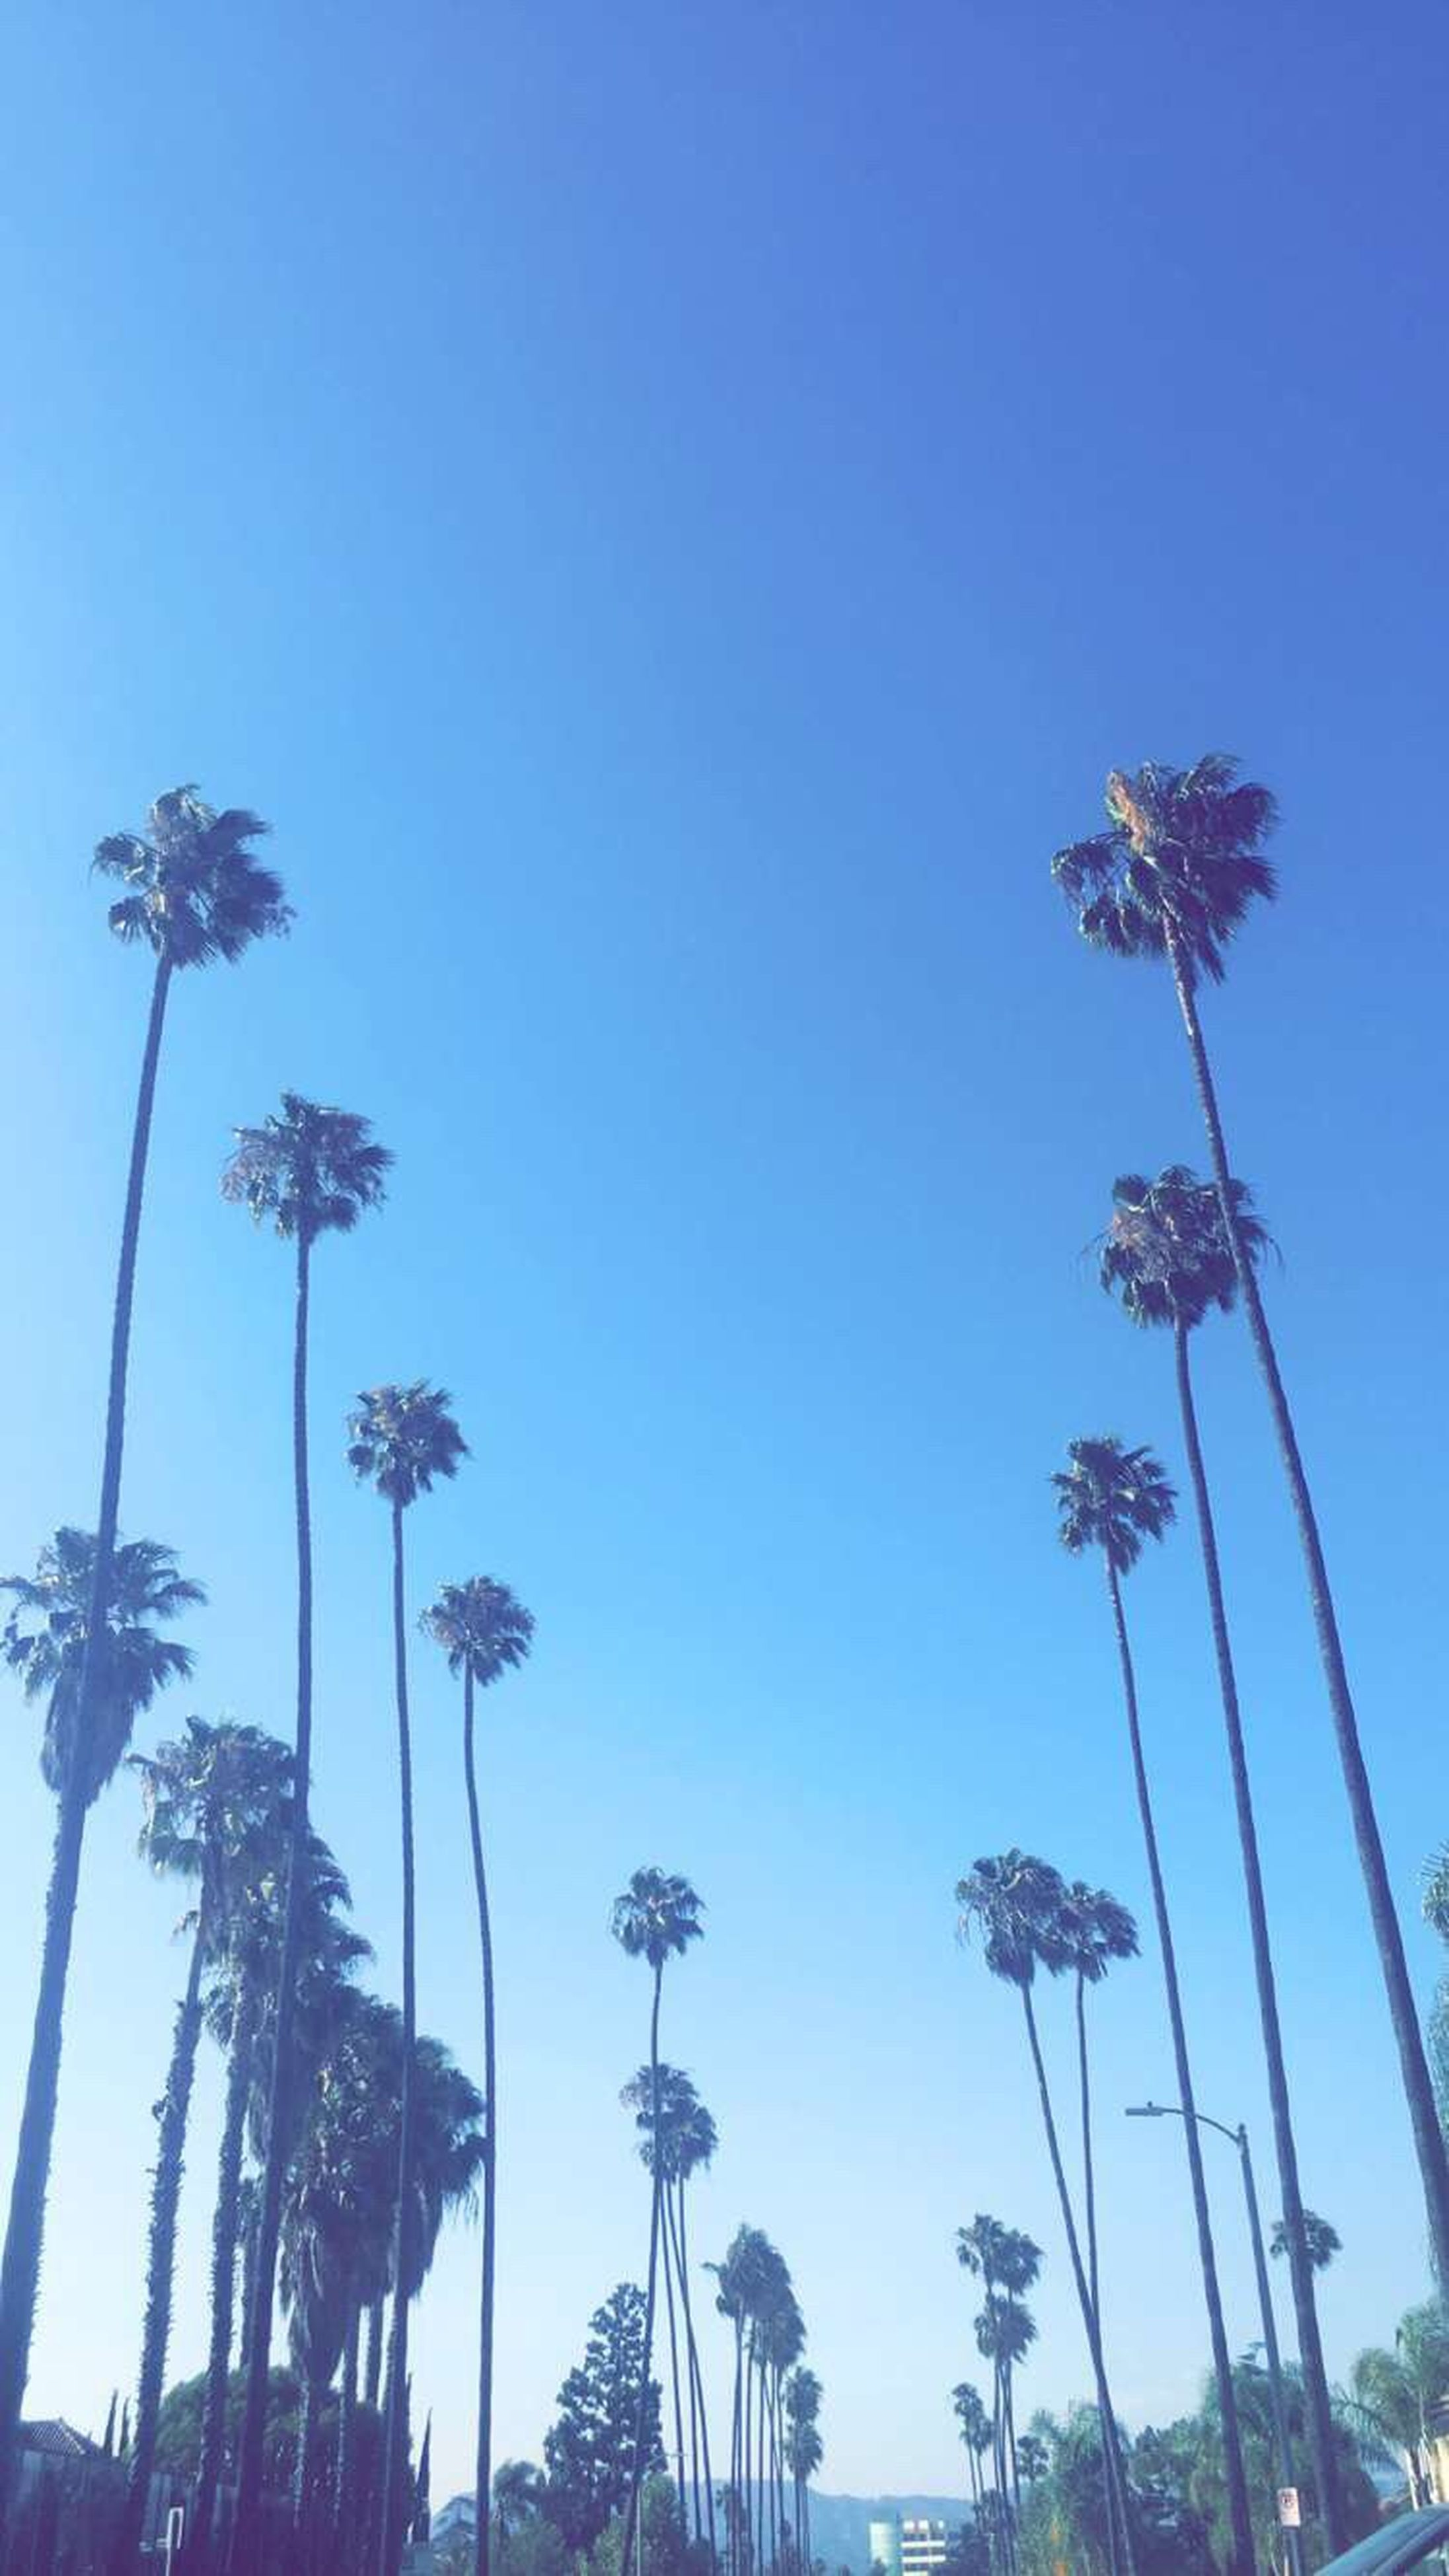 low angle view, palm tree, clear sky, tree, street light, blue, sky, lighting equipment, tall - high, growth, nature, outdoors, no people, coconut palm tree, day, beauty in nature, pole, tranquility